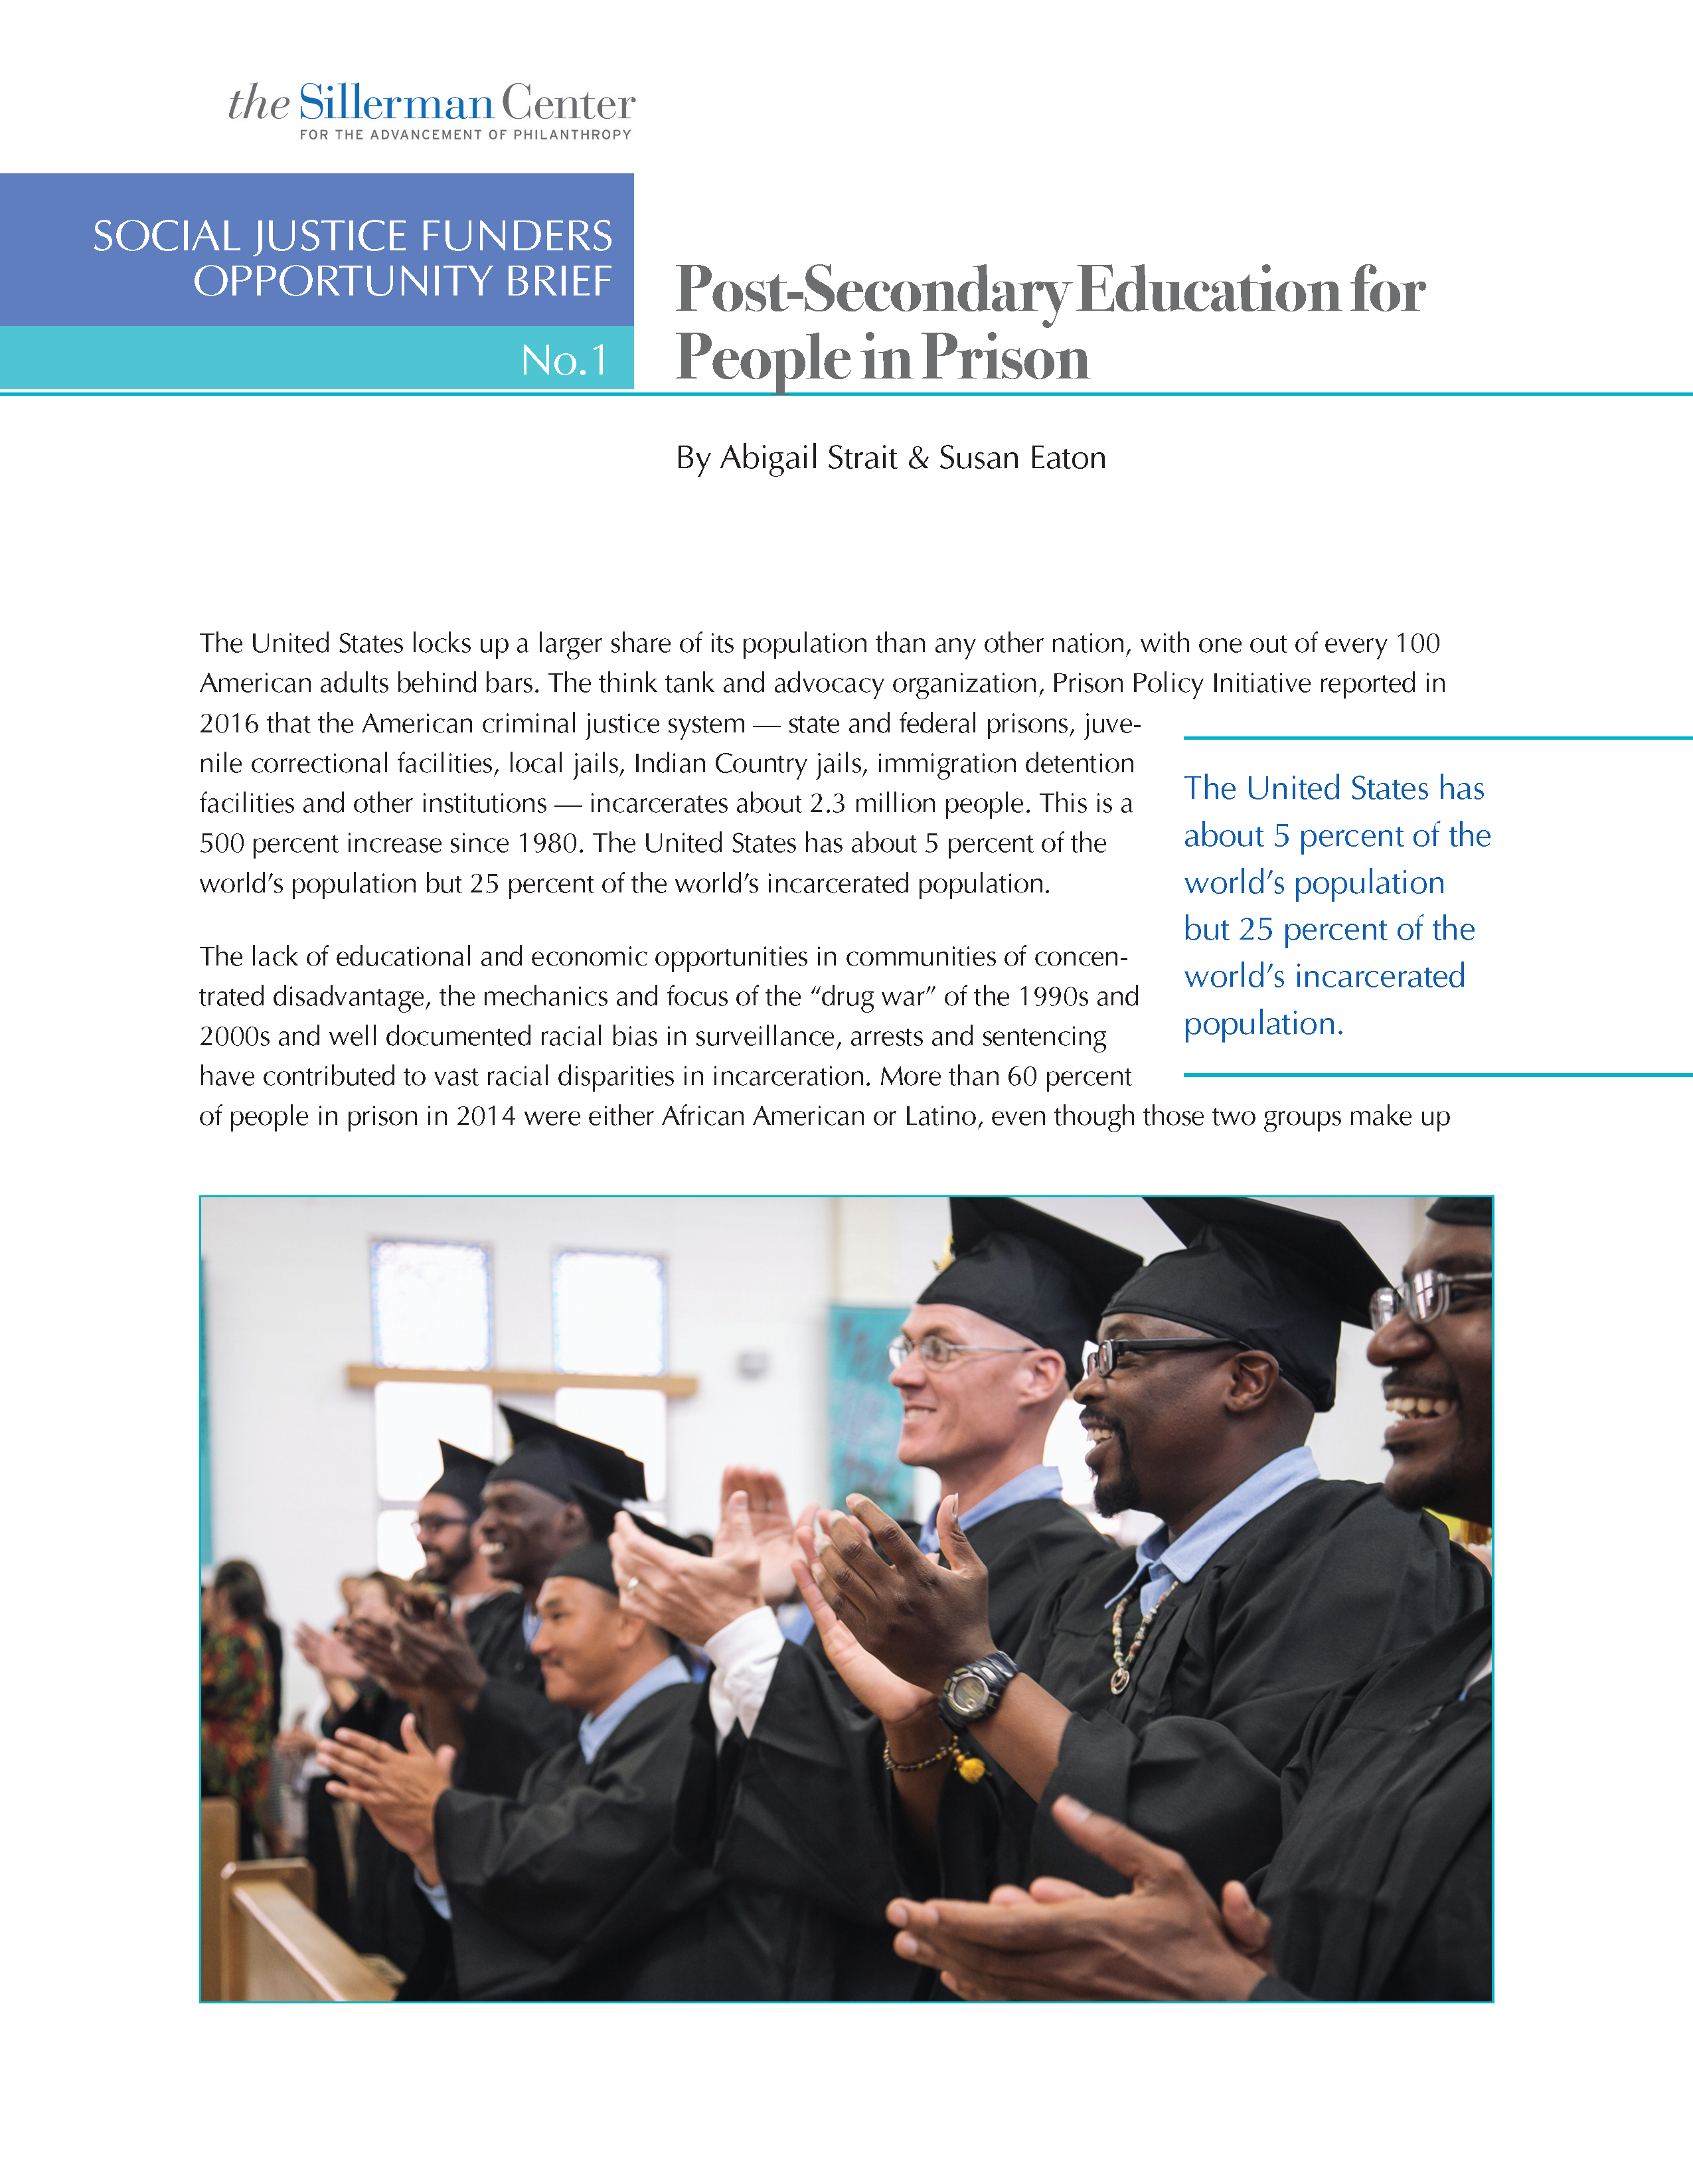 Post-Secondary Education for People in Prison